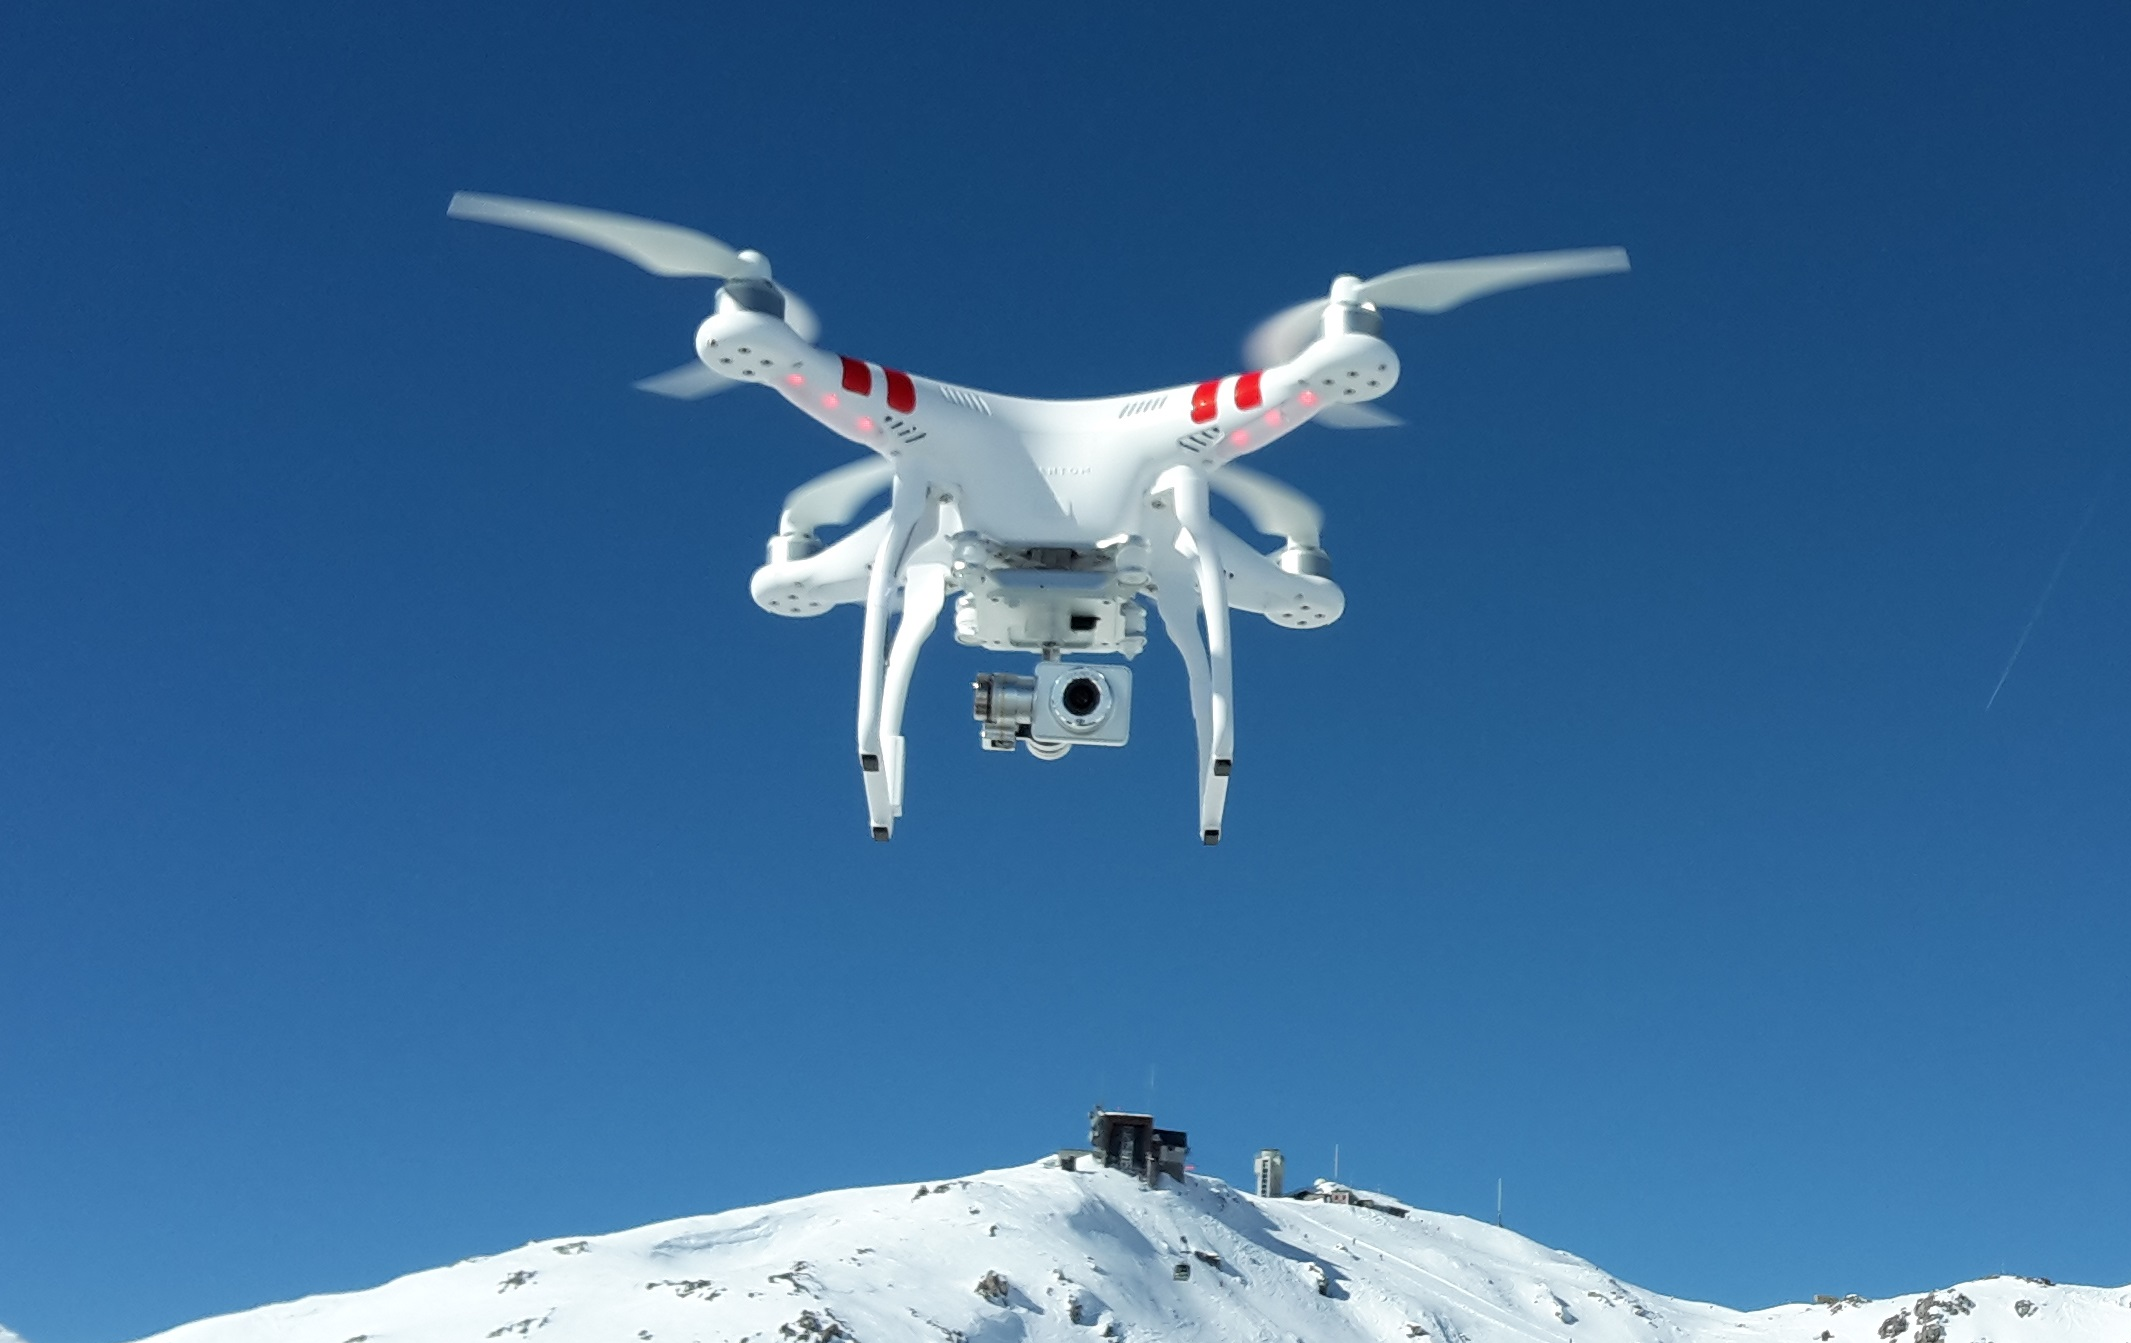 DJI_Phantom_2_Vision+_V3_hovering_over_Weissfluhjoch_(cropped)